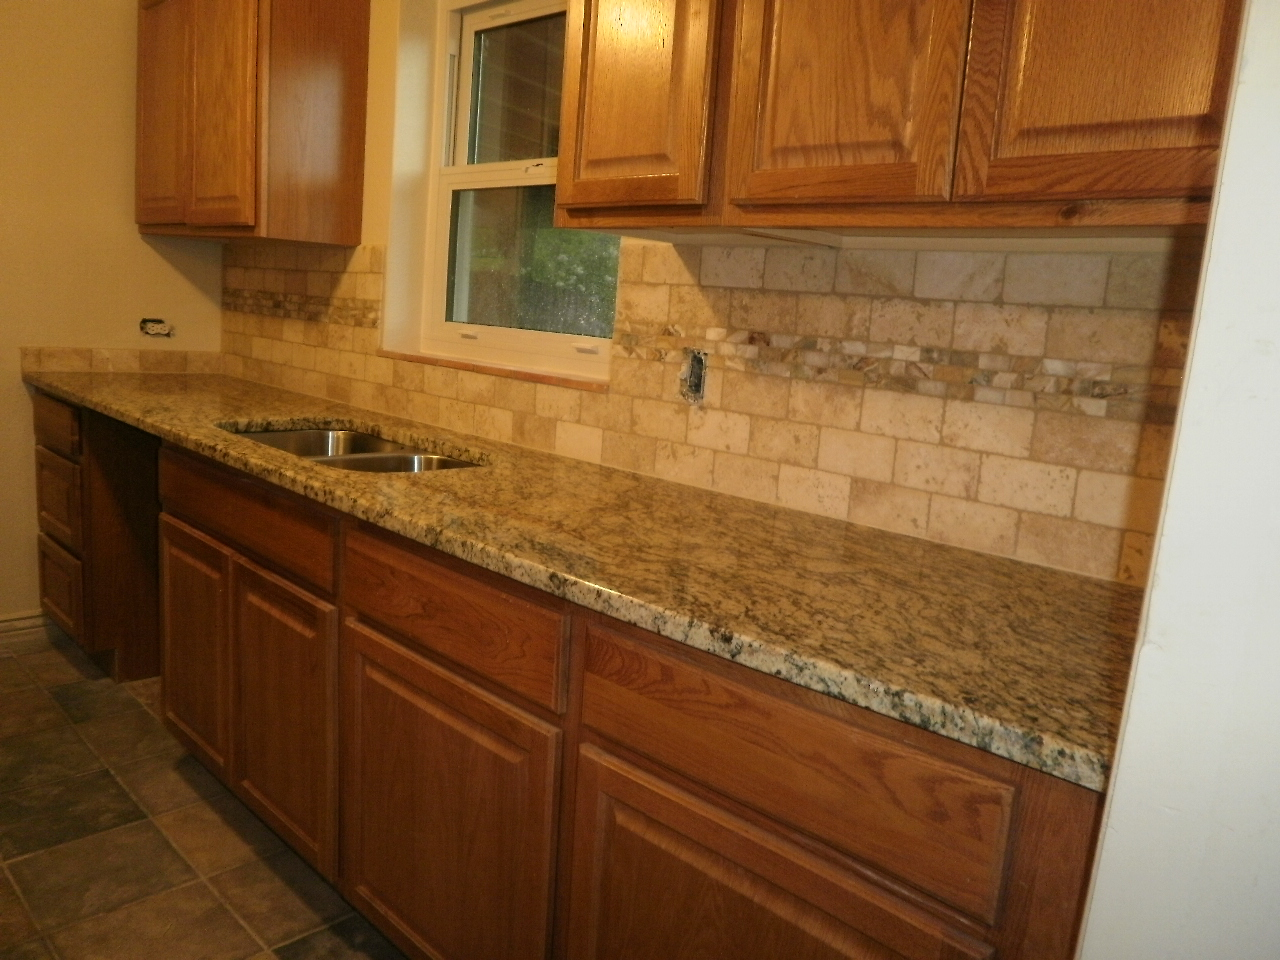 Integrity installations a division of front range backsplash may 2011 - Granite kitchen design ...